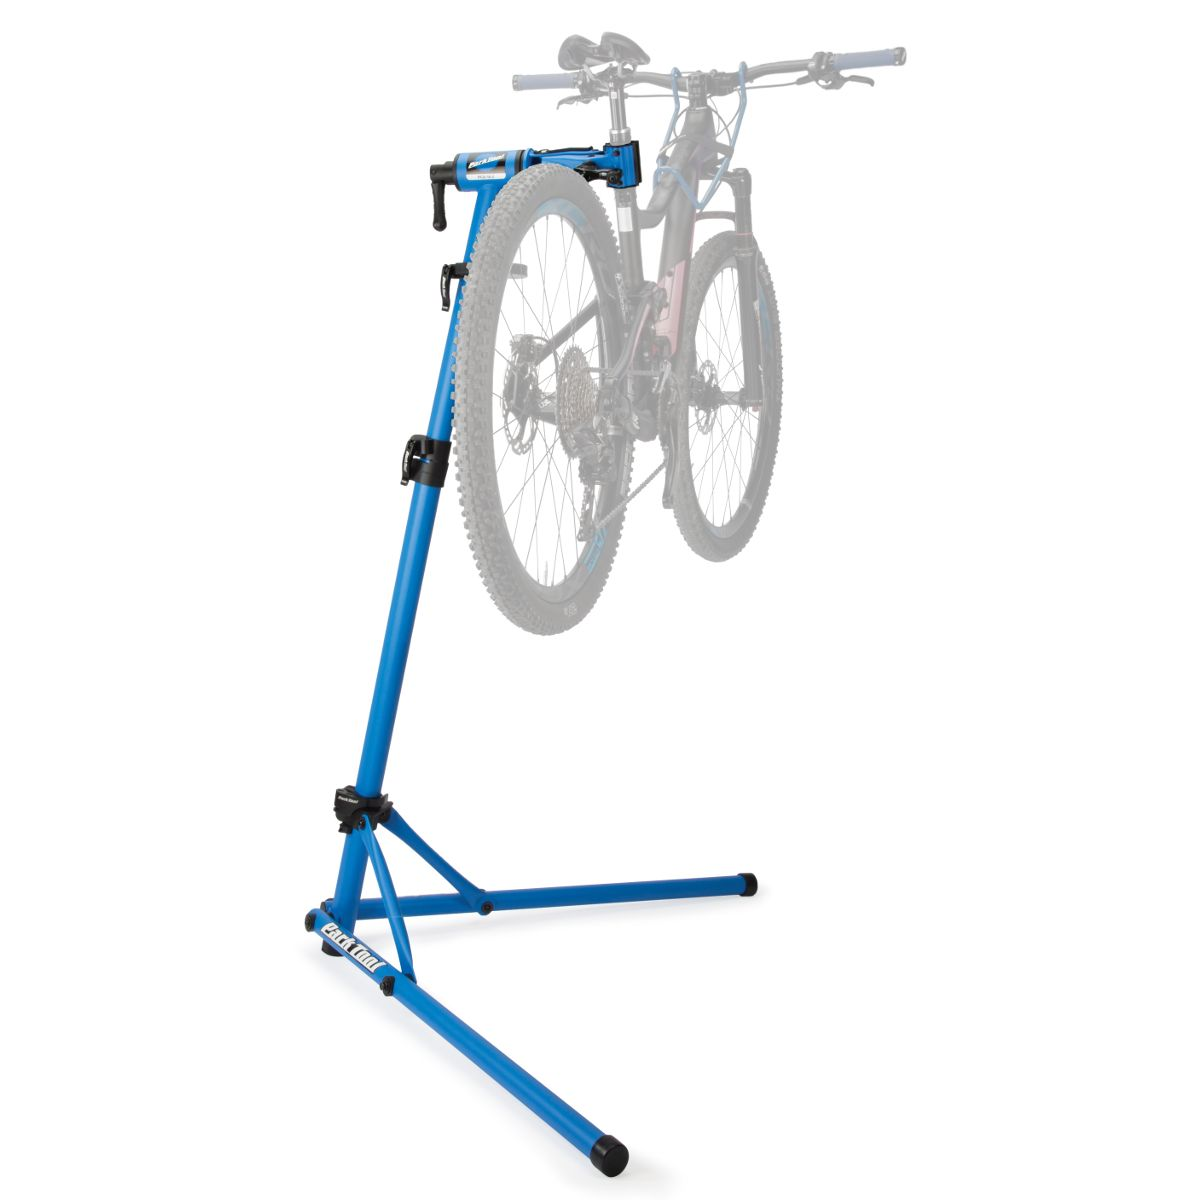 Fantastisk Köp Park Tool PCS-10.2 bicycle workstand with tool tray | ROSE Bikes IA-25